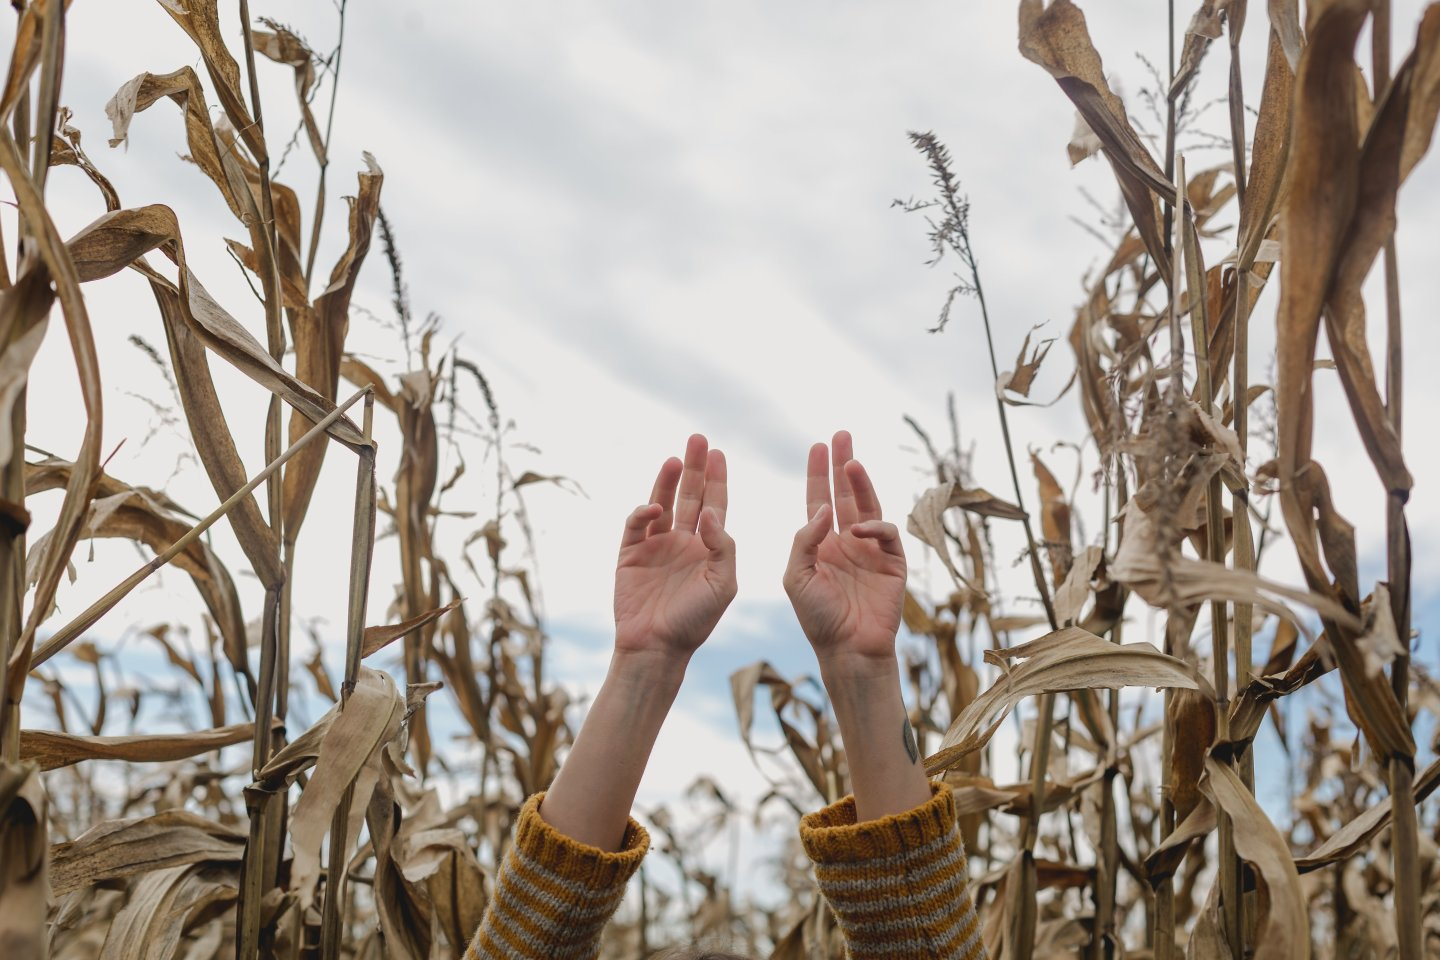 hands-reaching-up-in-cornfield